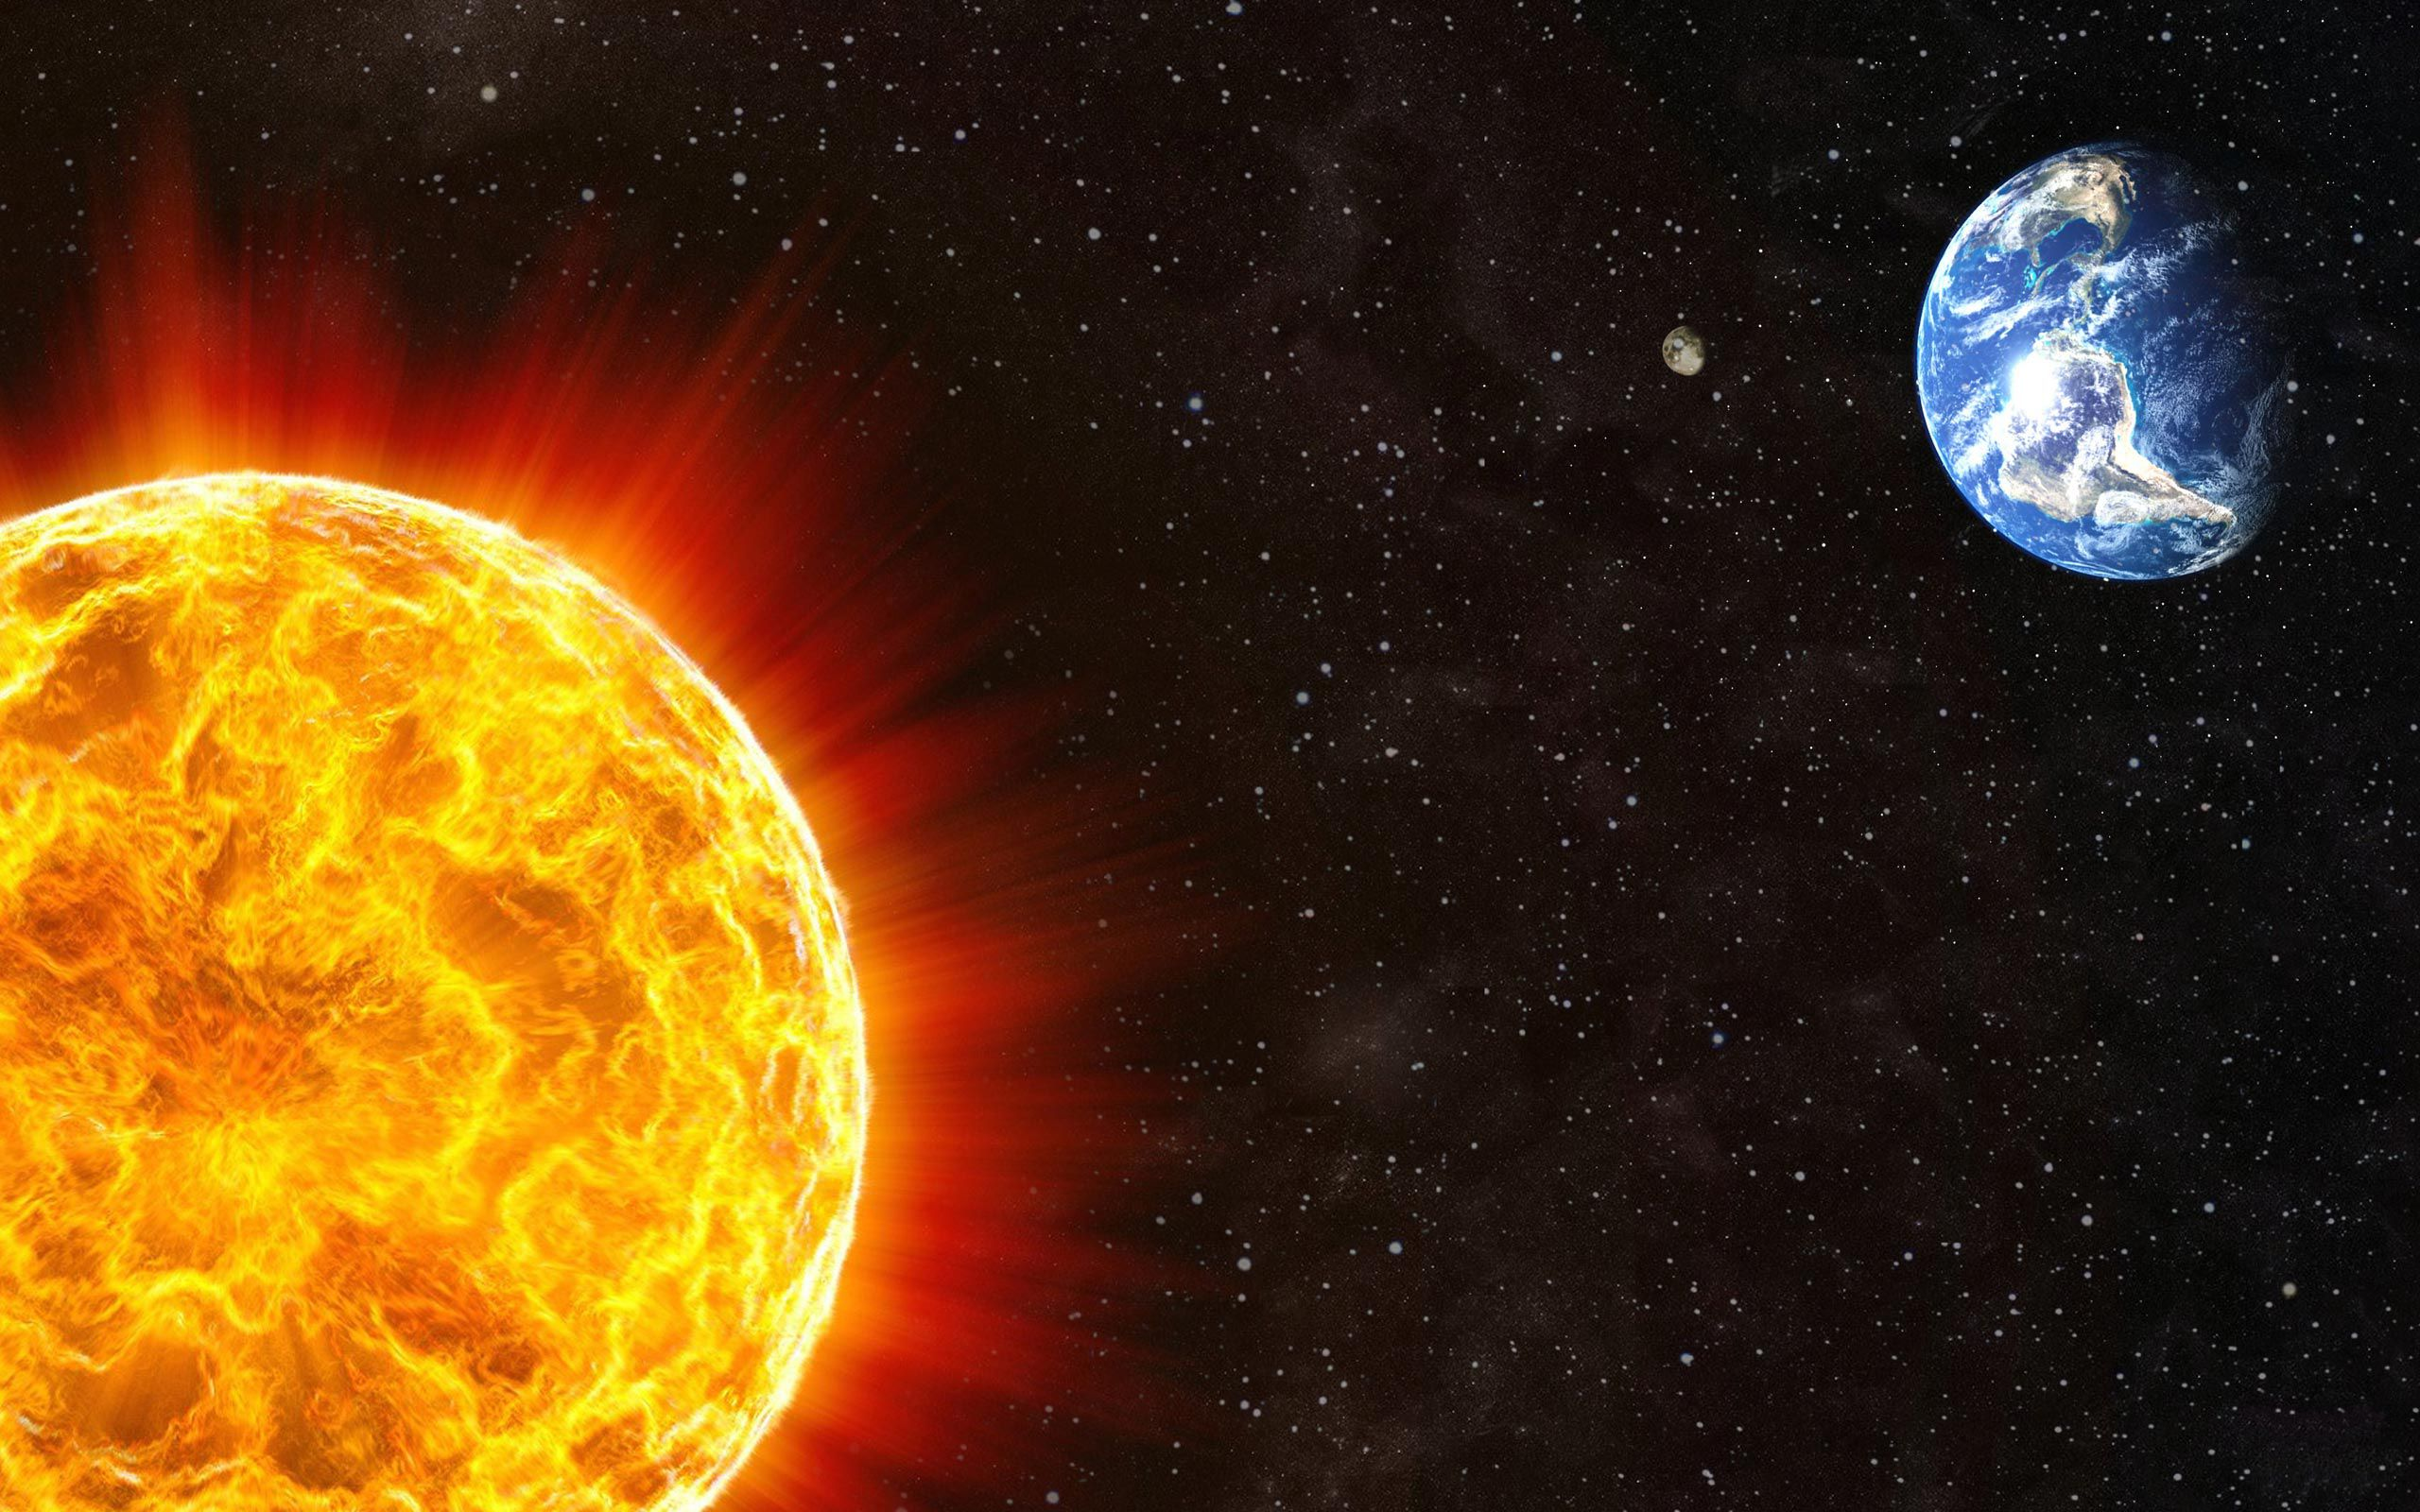 United Nations We Must Move Earth Closer To Sun For